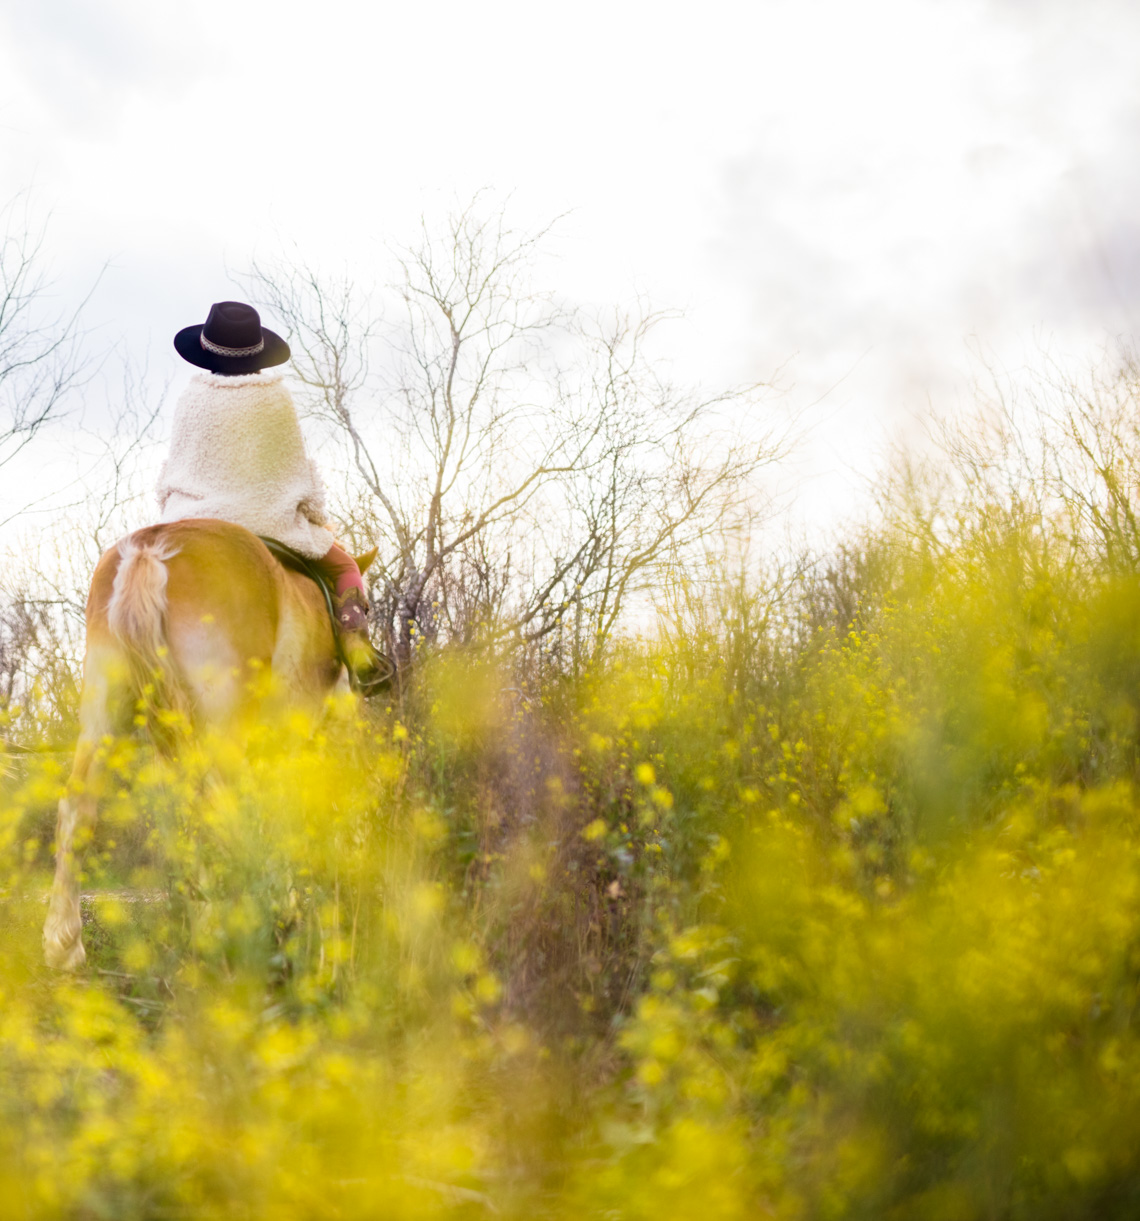 Horseback riding in wildflowers | Visual Storytelling Photographer